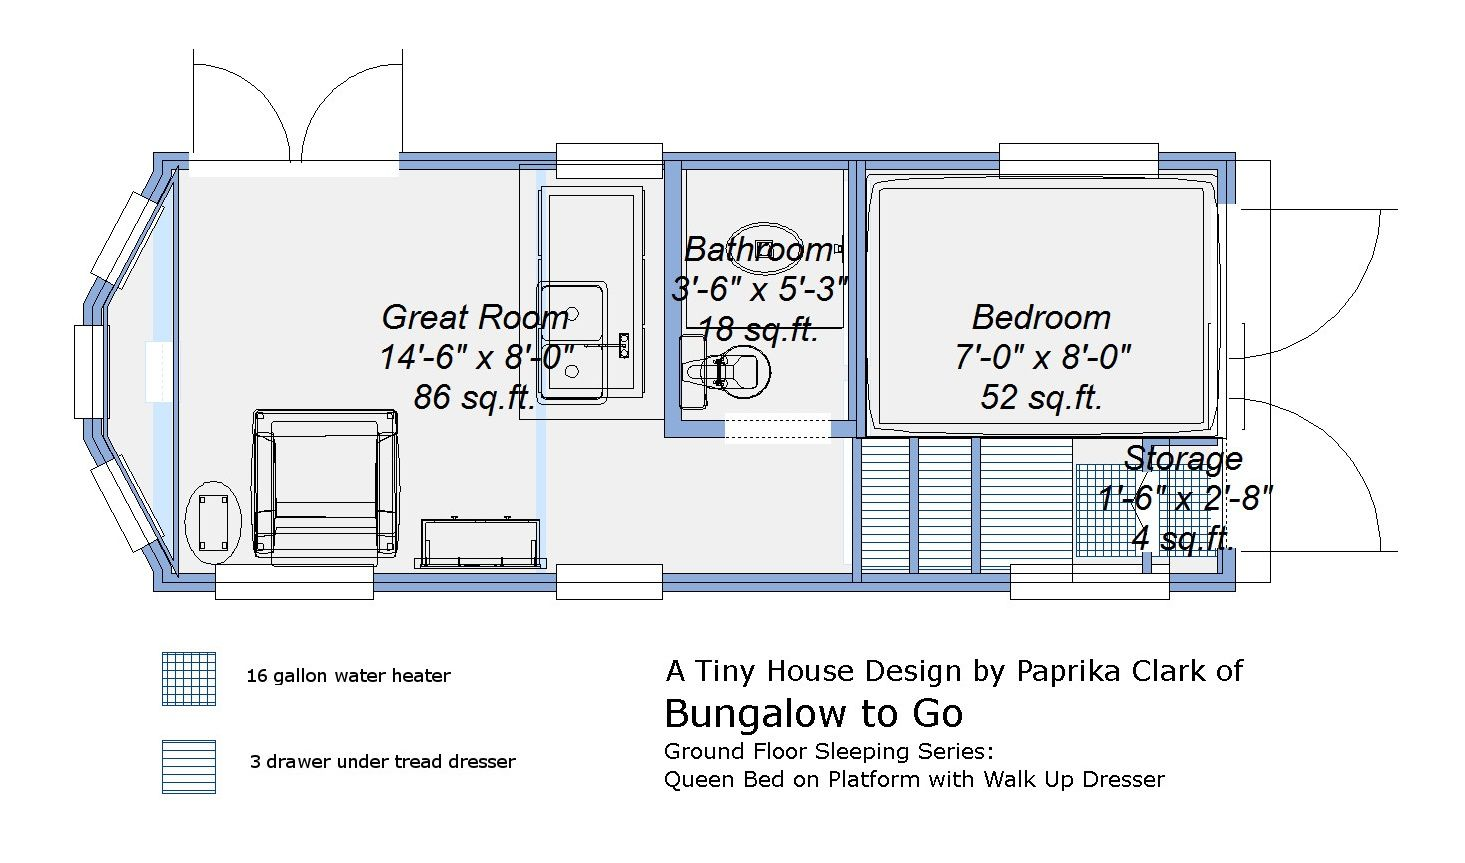 Free Tiny House Trailer Plans Ground Floor Sleeping Plans Queen Bed On Platform Tiny House Trailer Tiny House Trailer Plans Tiny House Plans